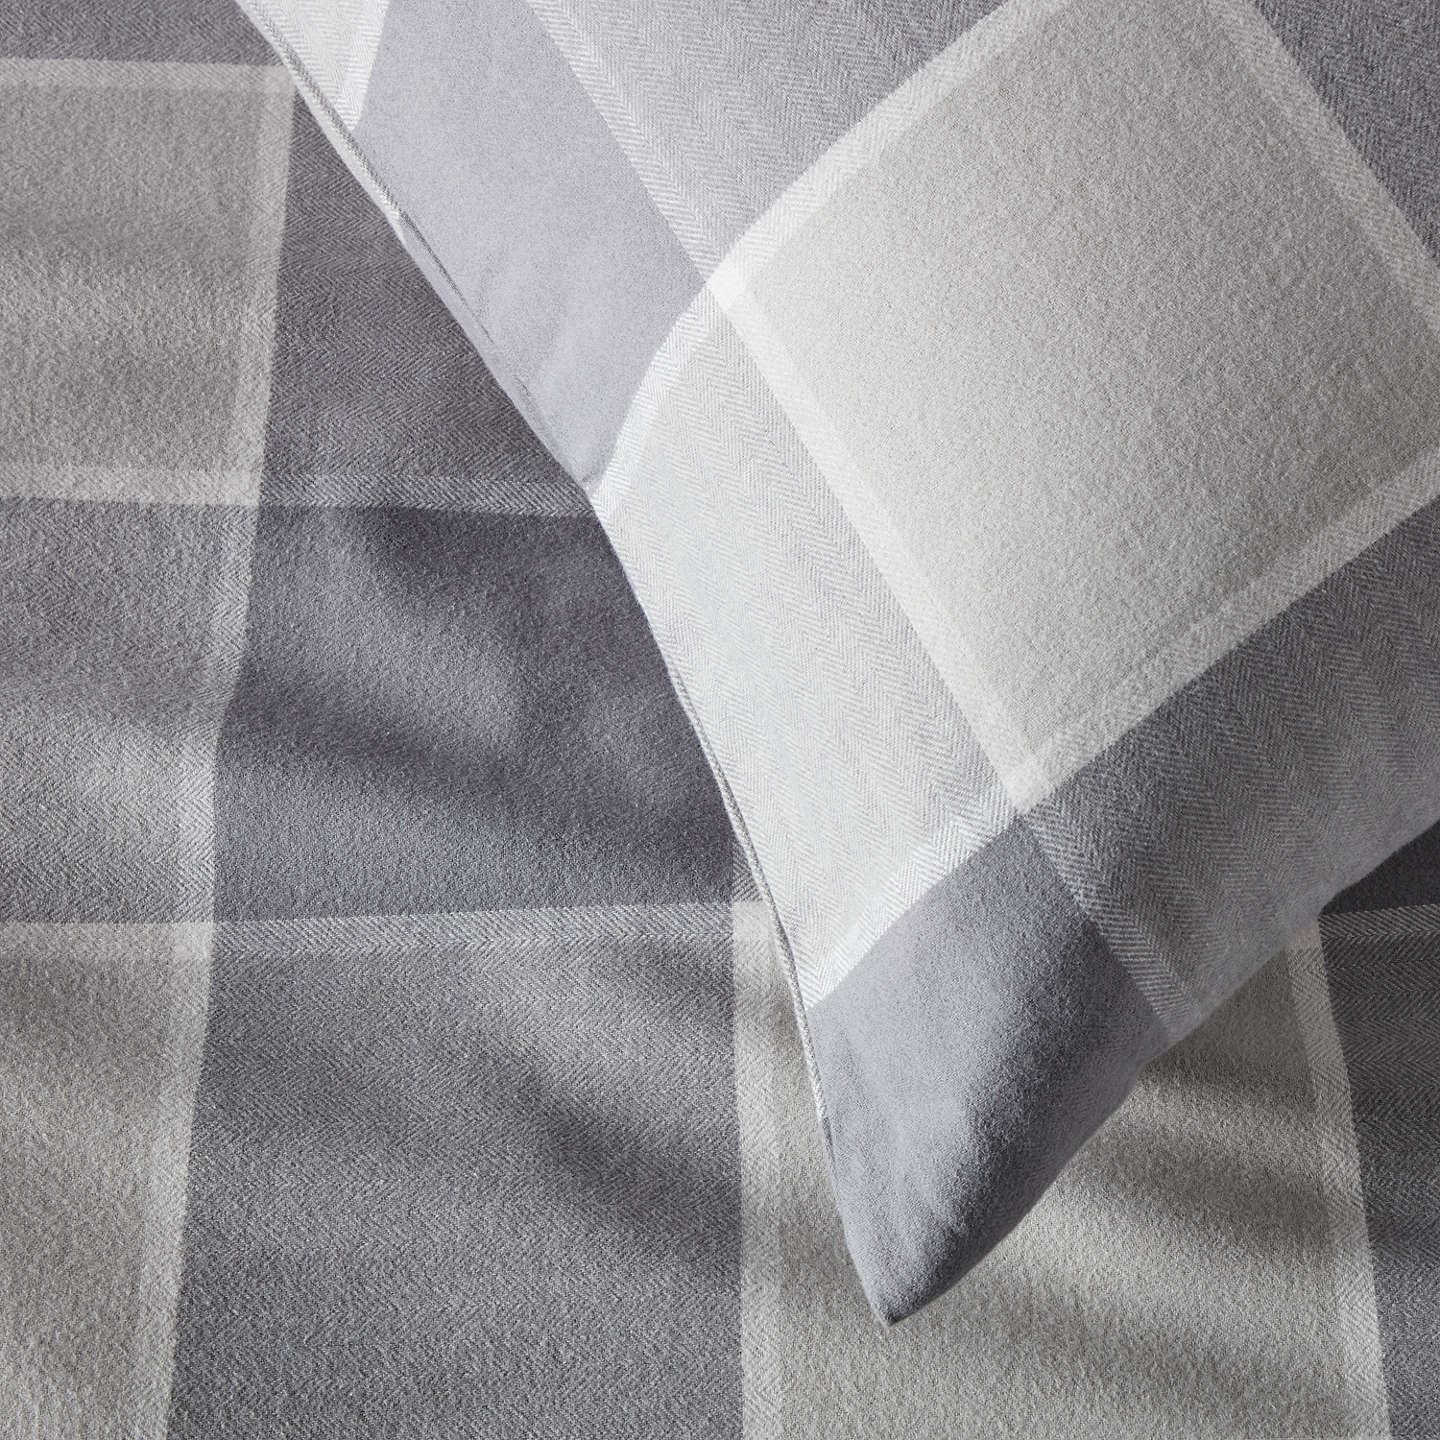 BuyJohn Lewis Window Check Brushed Cotton Duvet Cover and Pillowcase Set, Single Online at johnlewis.com